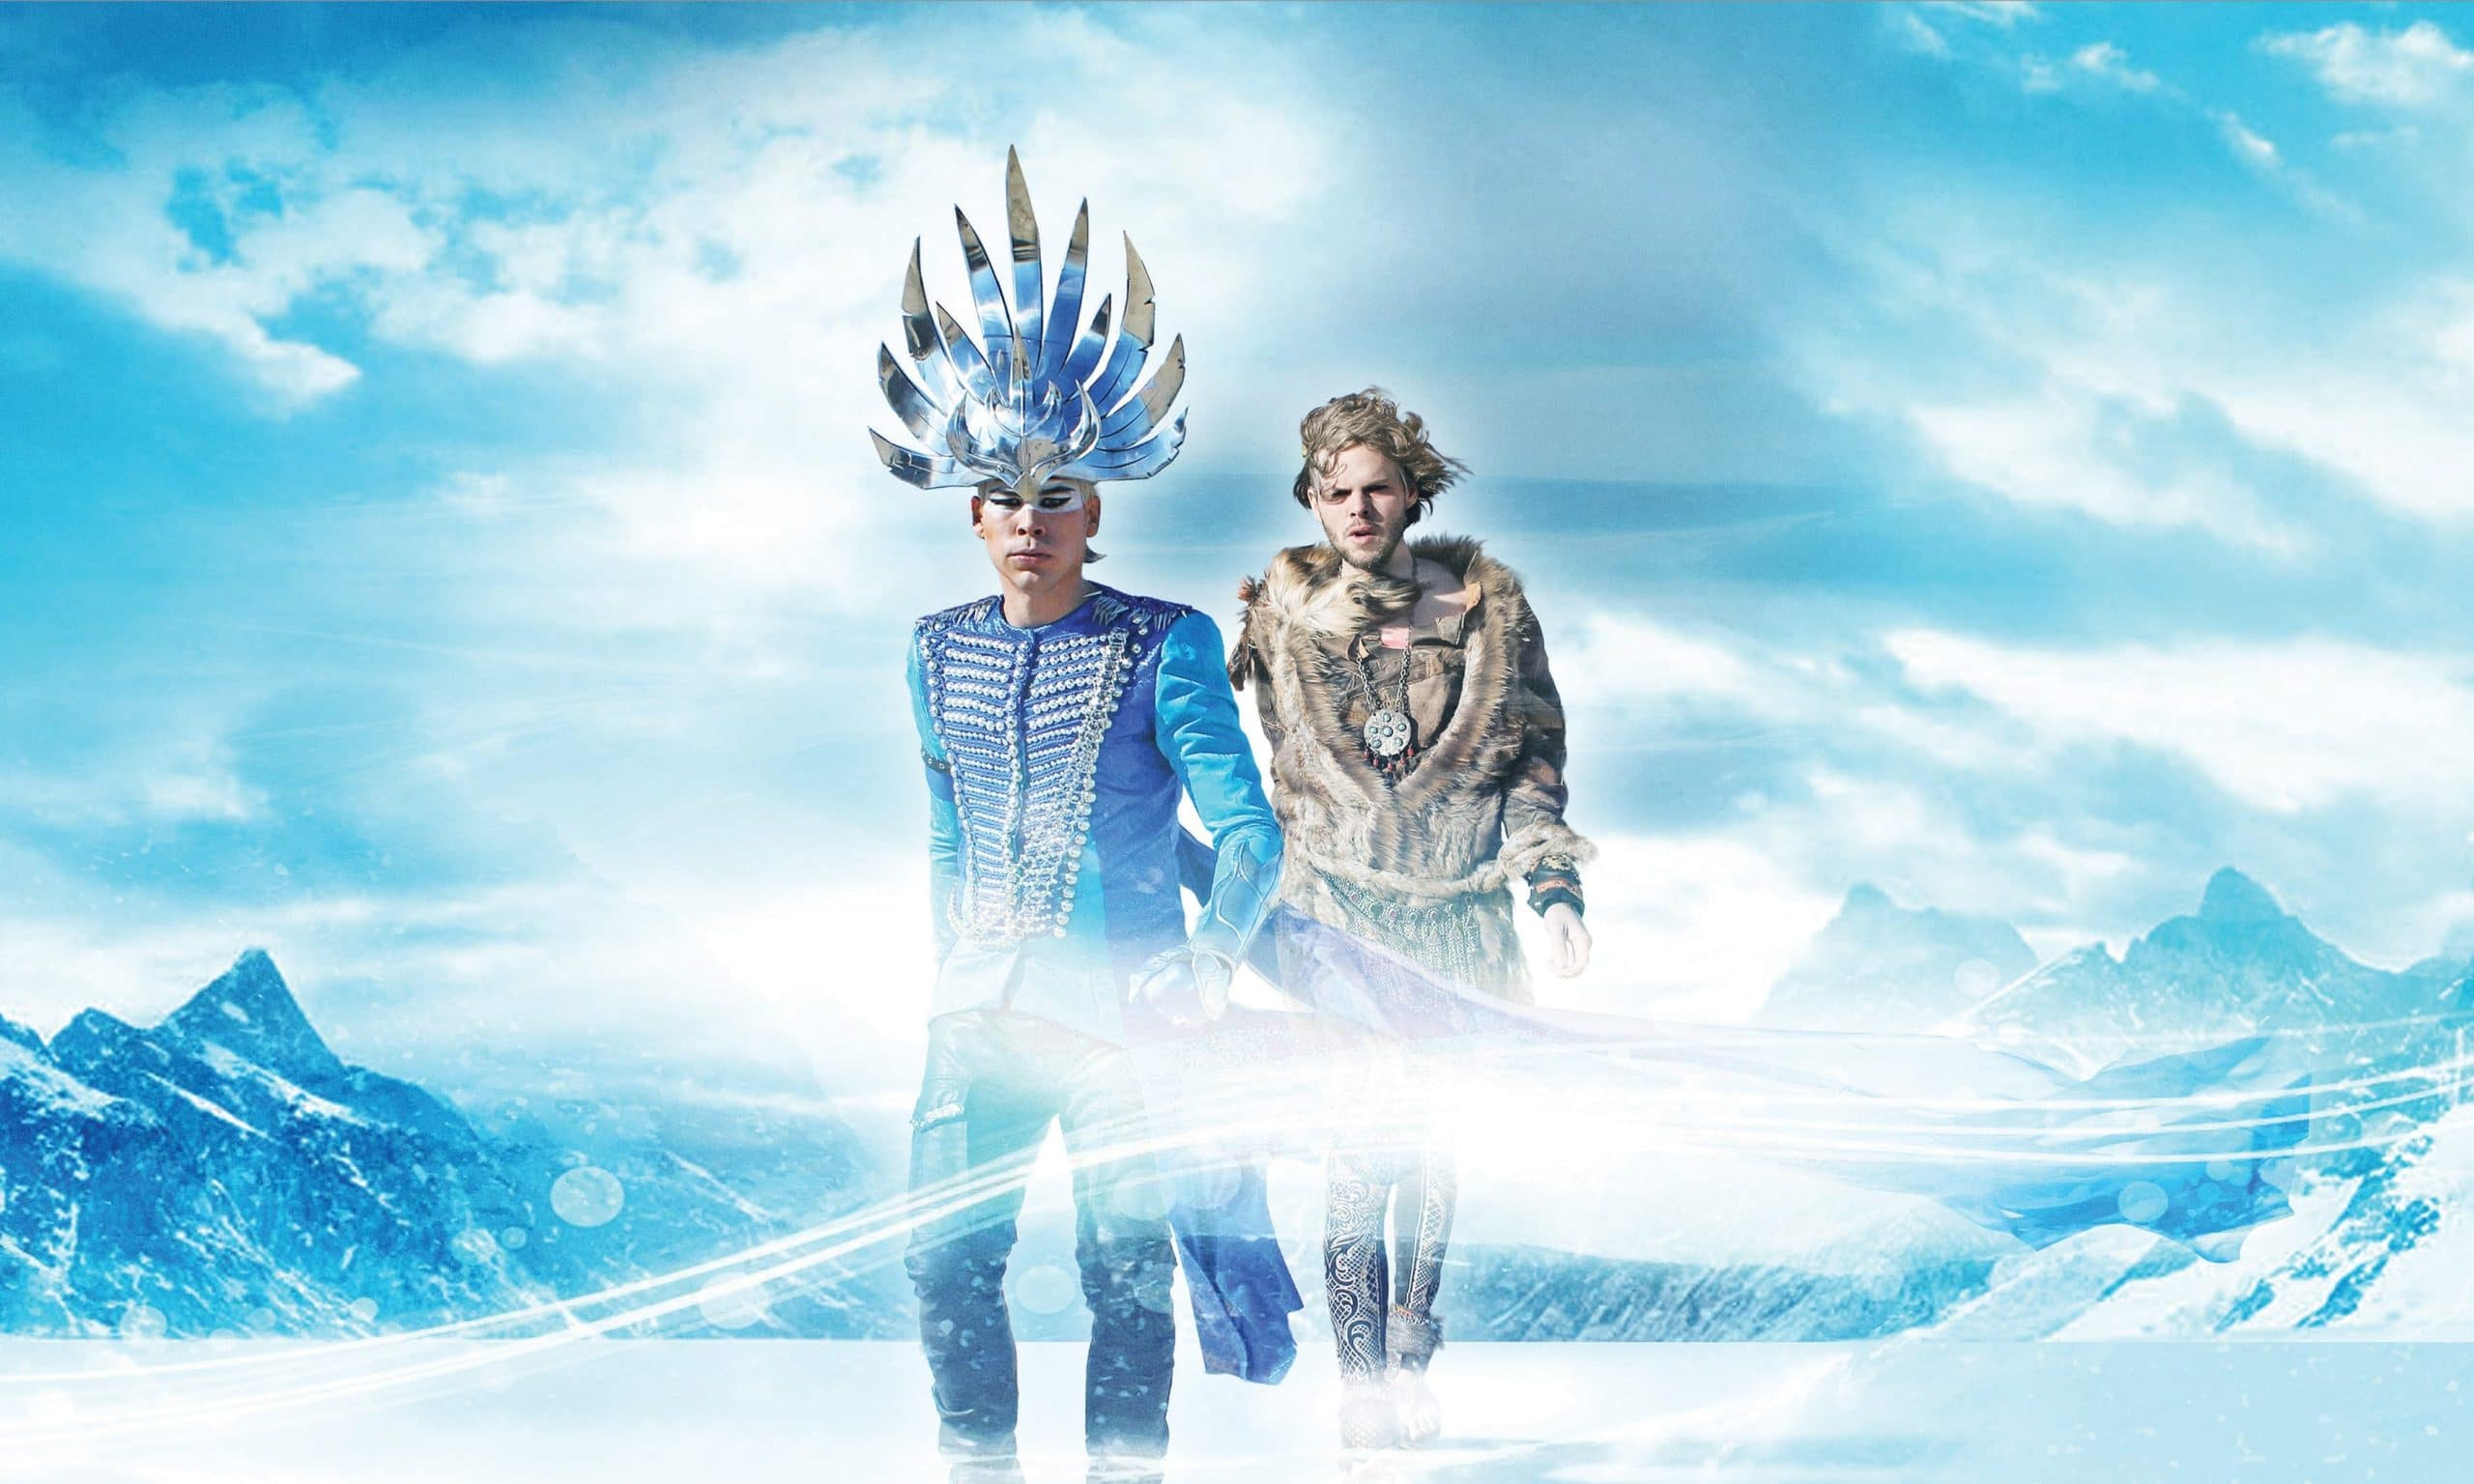 A punto el Nuevo disco de Empire of the sun